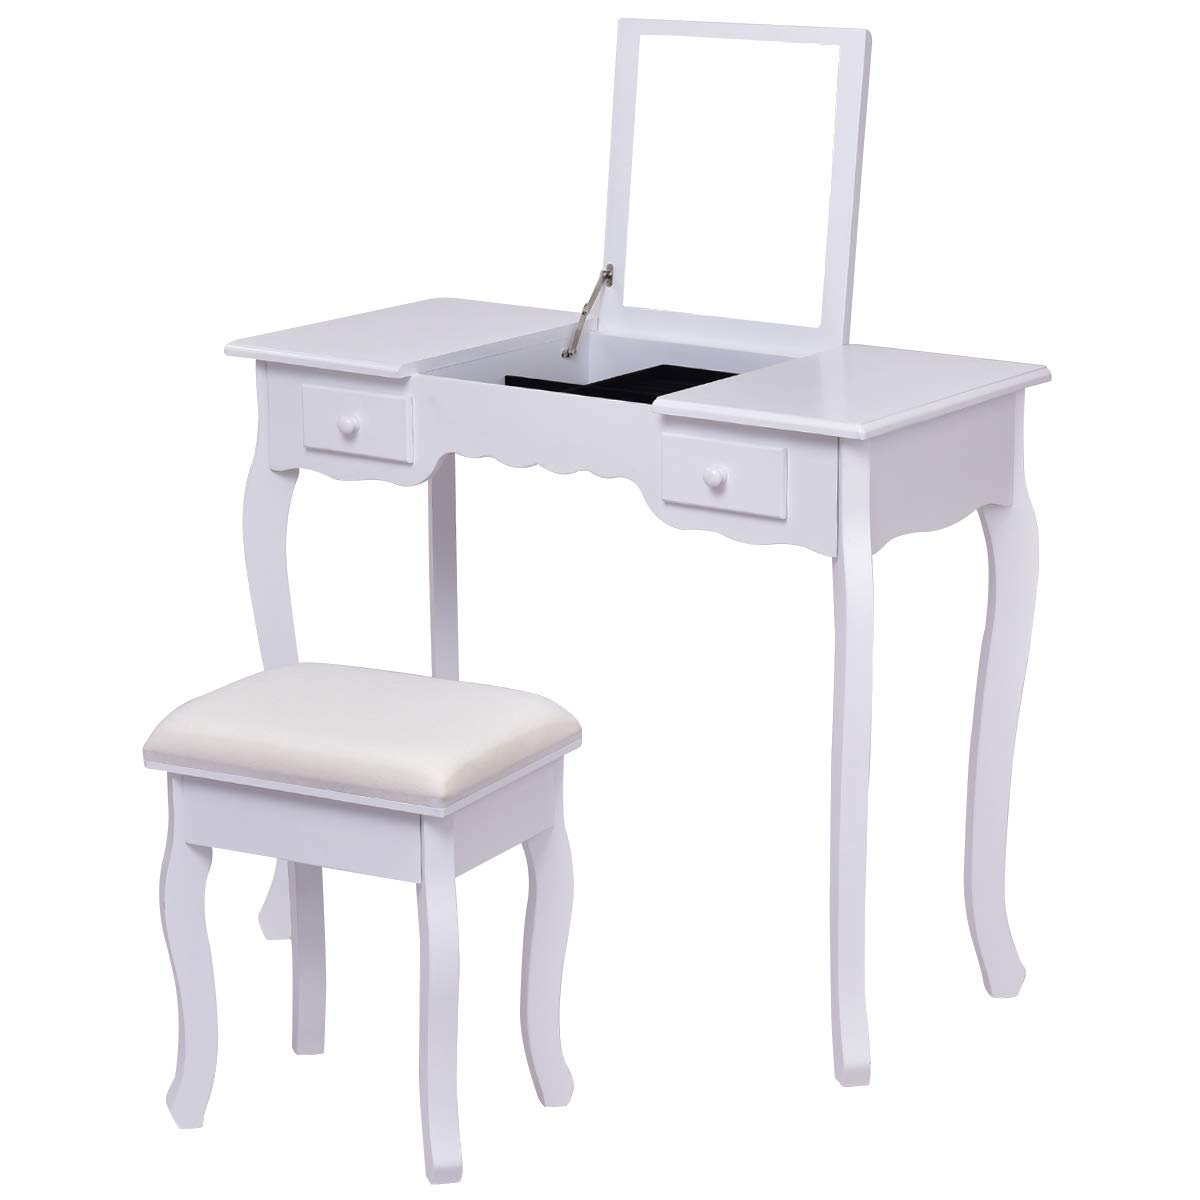 Giantex vanity table and stool set top flip mirror cushioned bench vanities desk for bedroom with removable organizers makeup tables dresser